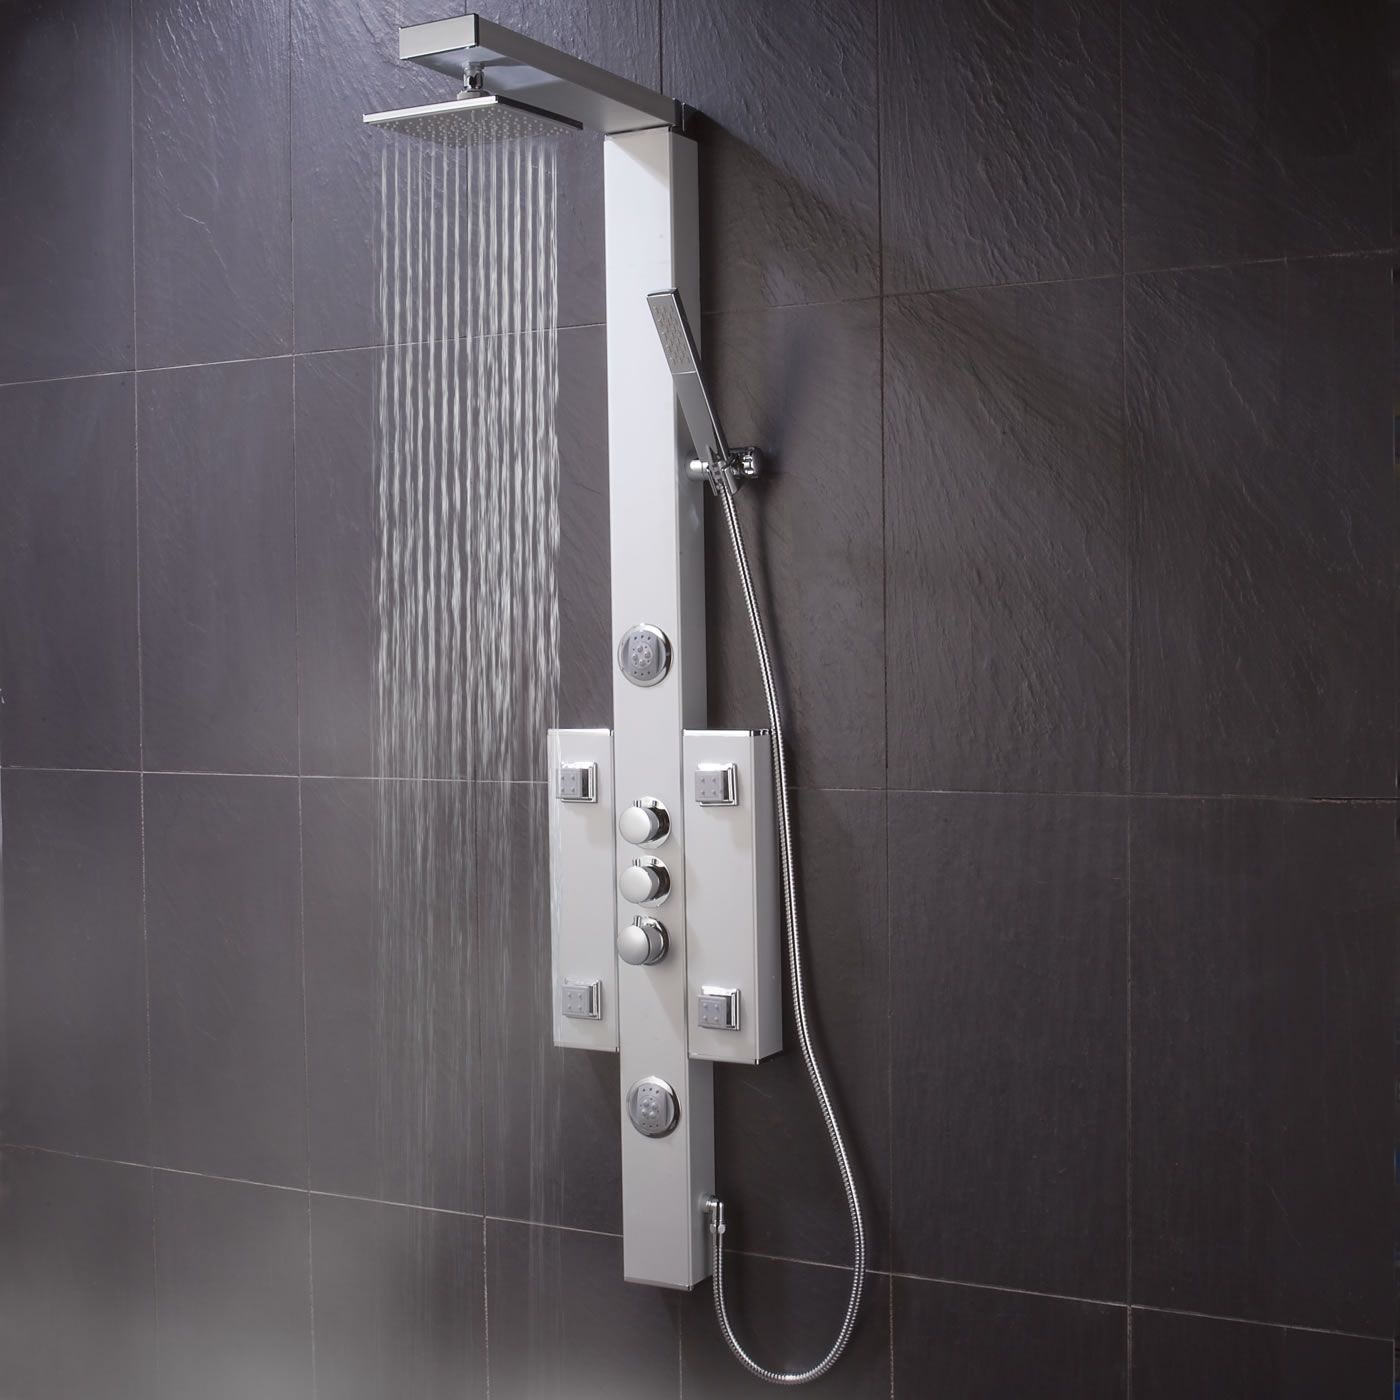 Thermostatic Shower Column Tower Panel With 6 Body Jets Image 2